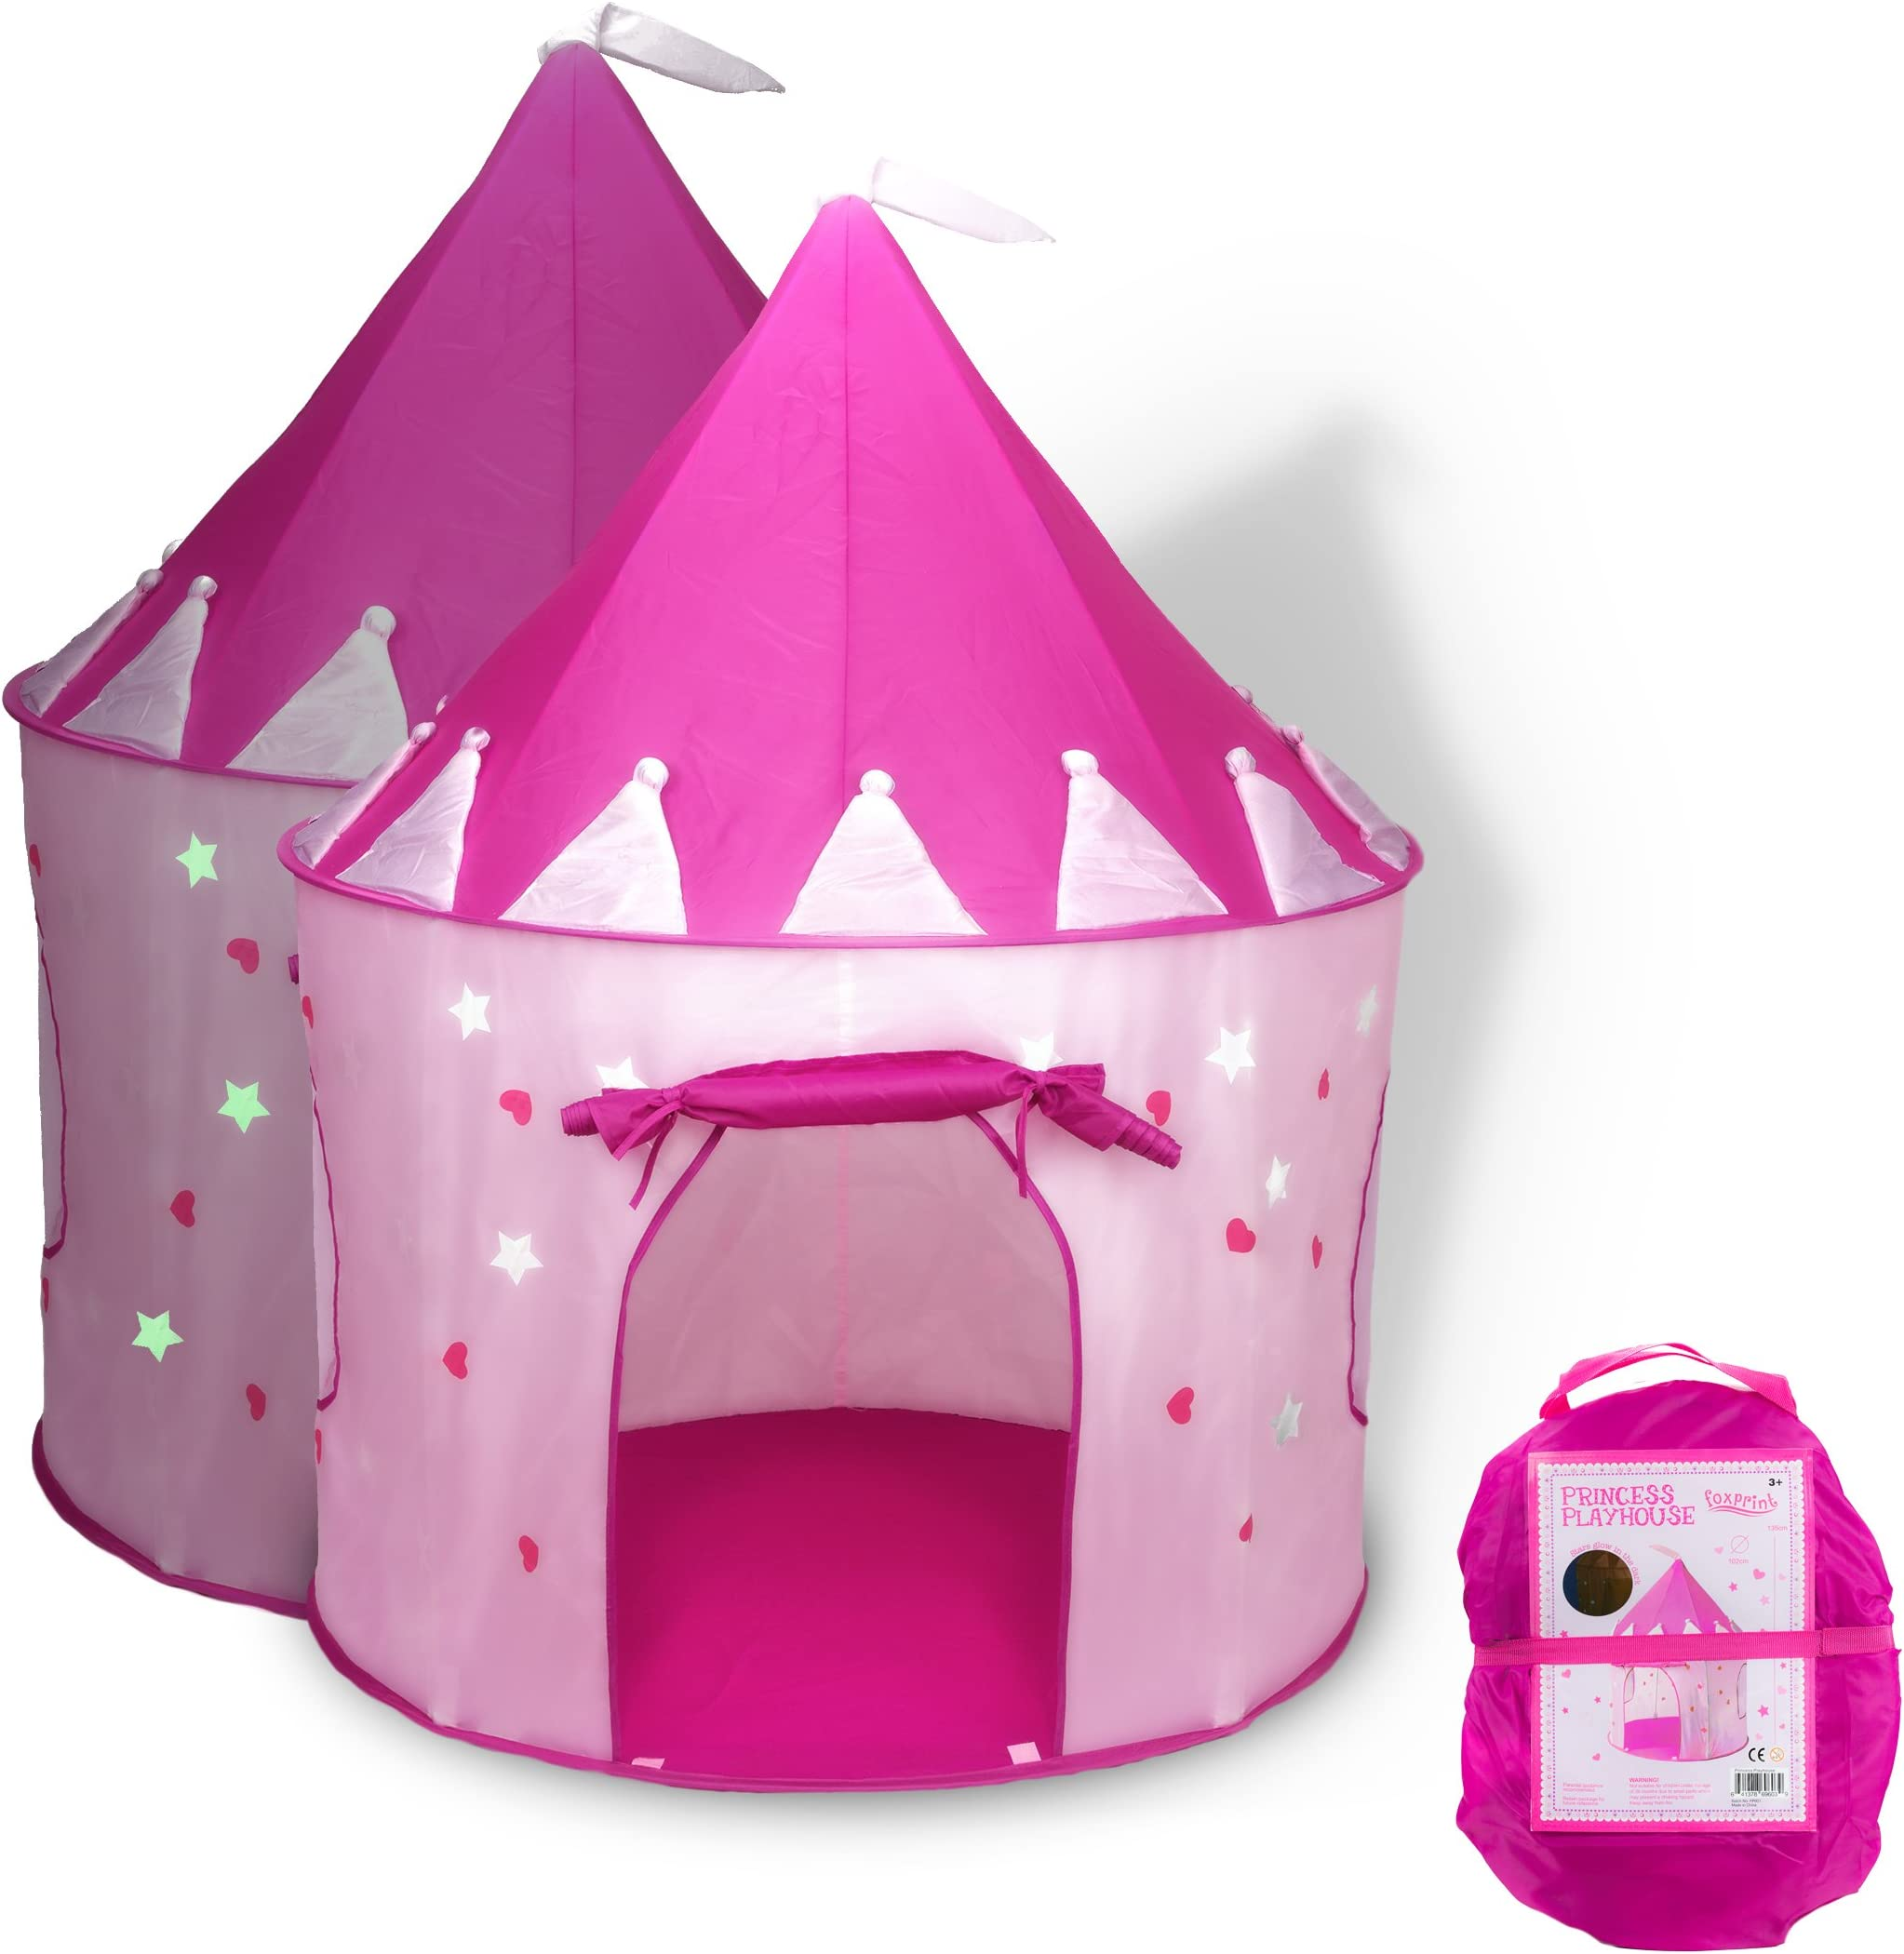 Fox Print Princess Castle Play Tent ...  sc 1 st  Amazon.com & Amazon.com: Play Tents u0026 Tunnels: Toys u0026 Games: Play Tents Play ...